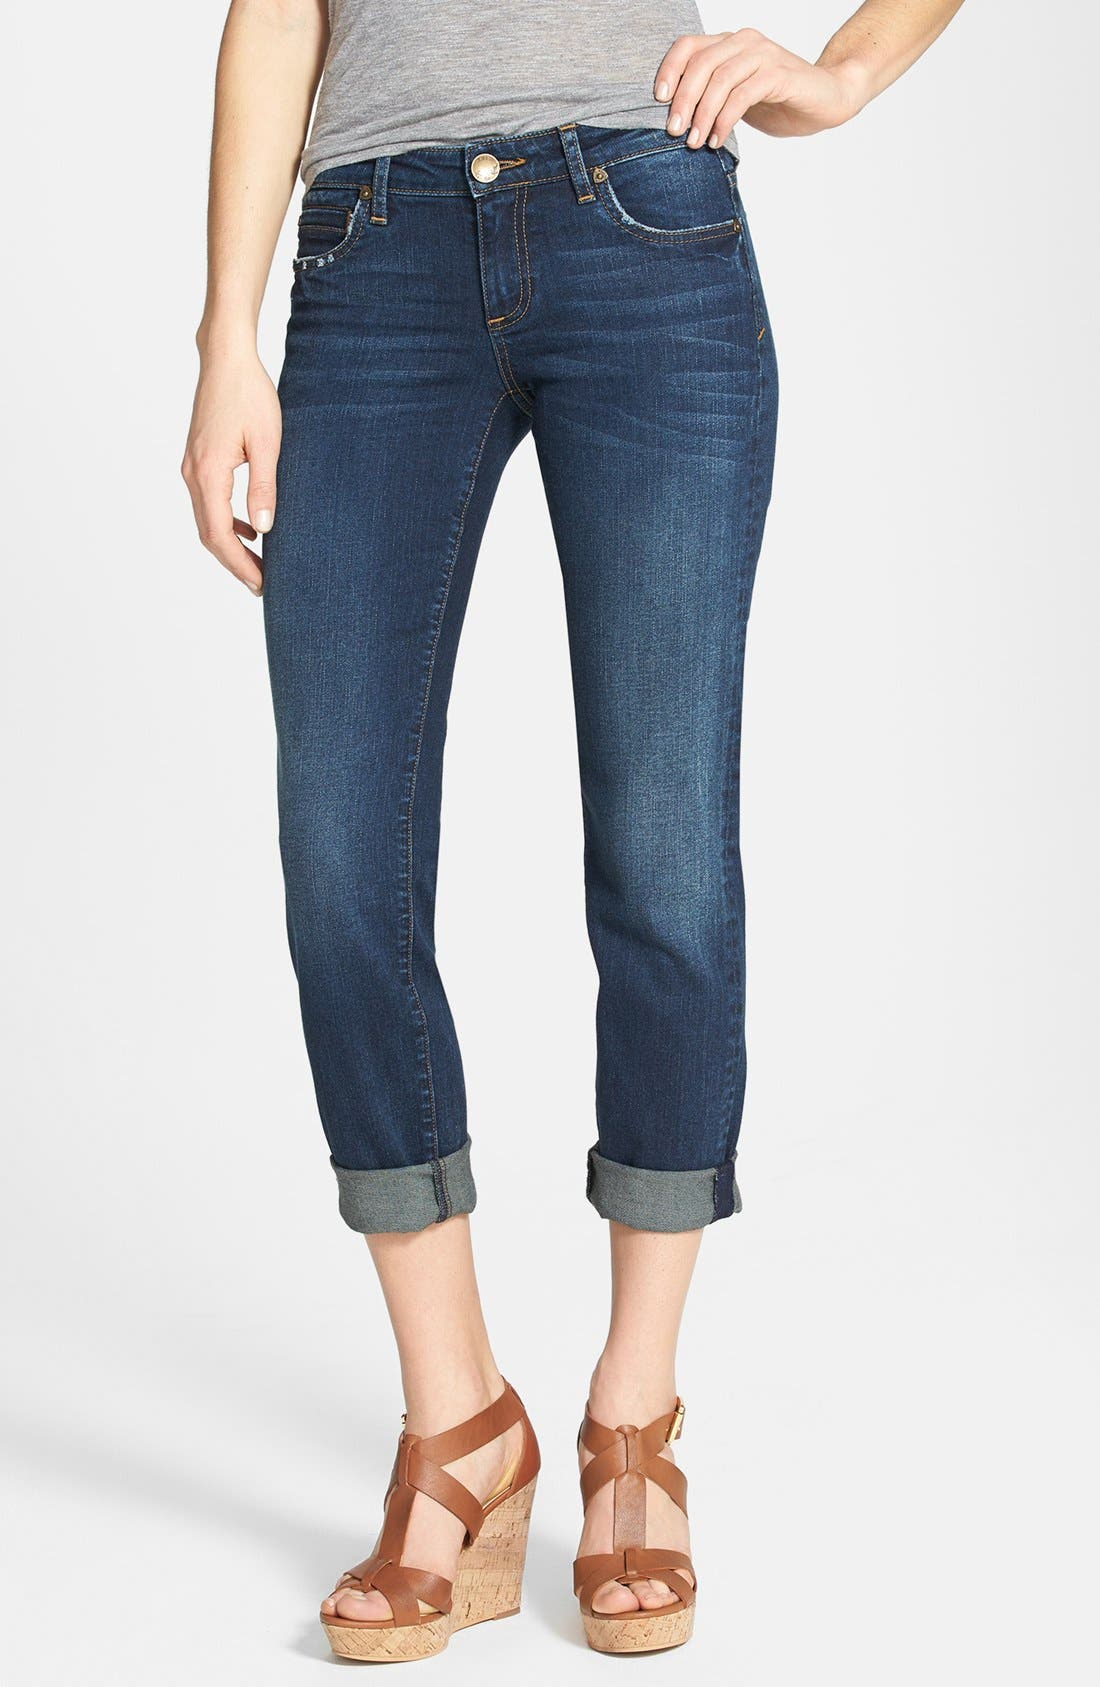 Main Image - KUT from the Kloth 'Catherine' Boyfriend Jeans (Magnify) (Regular & Petite)